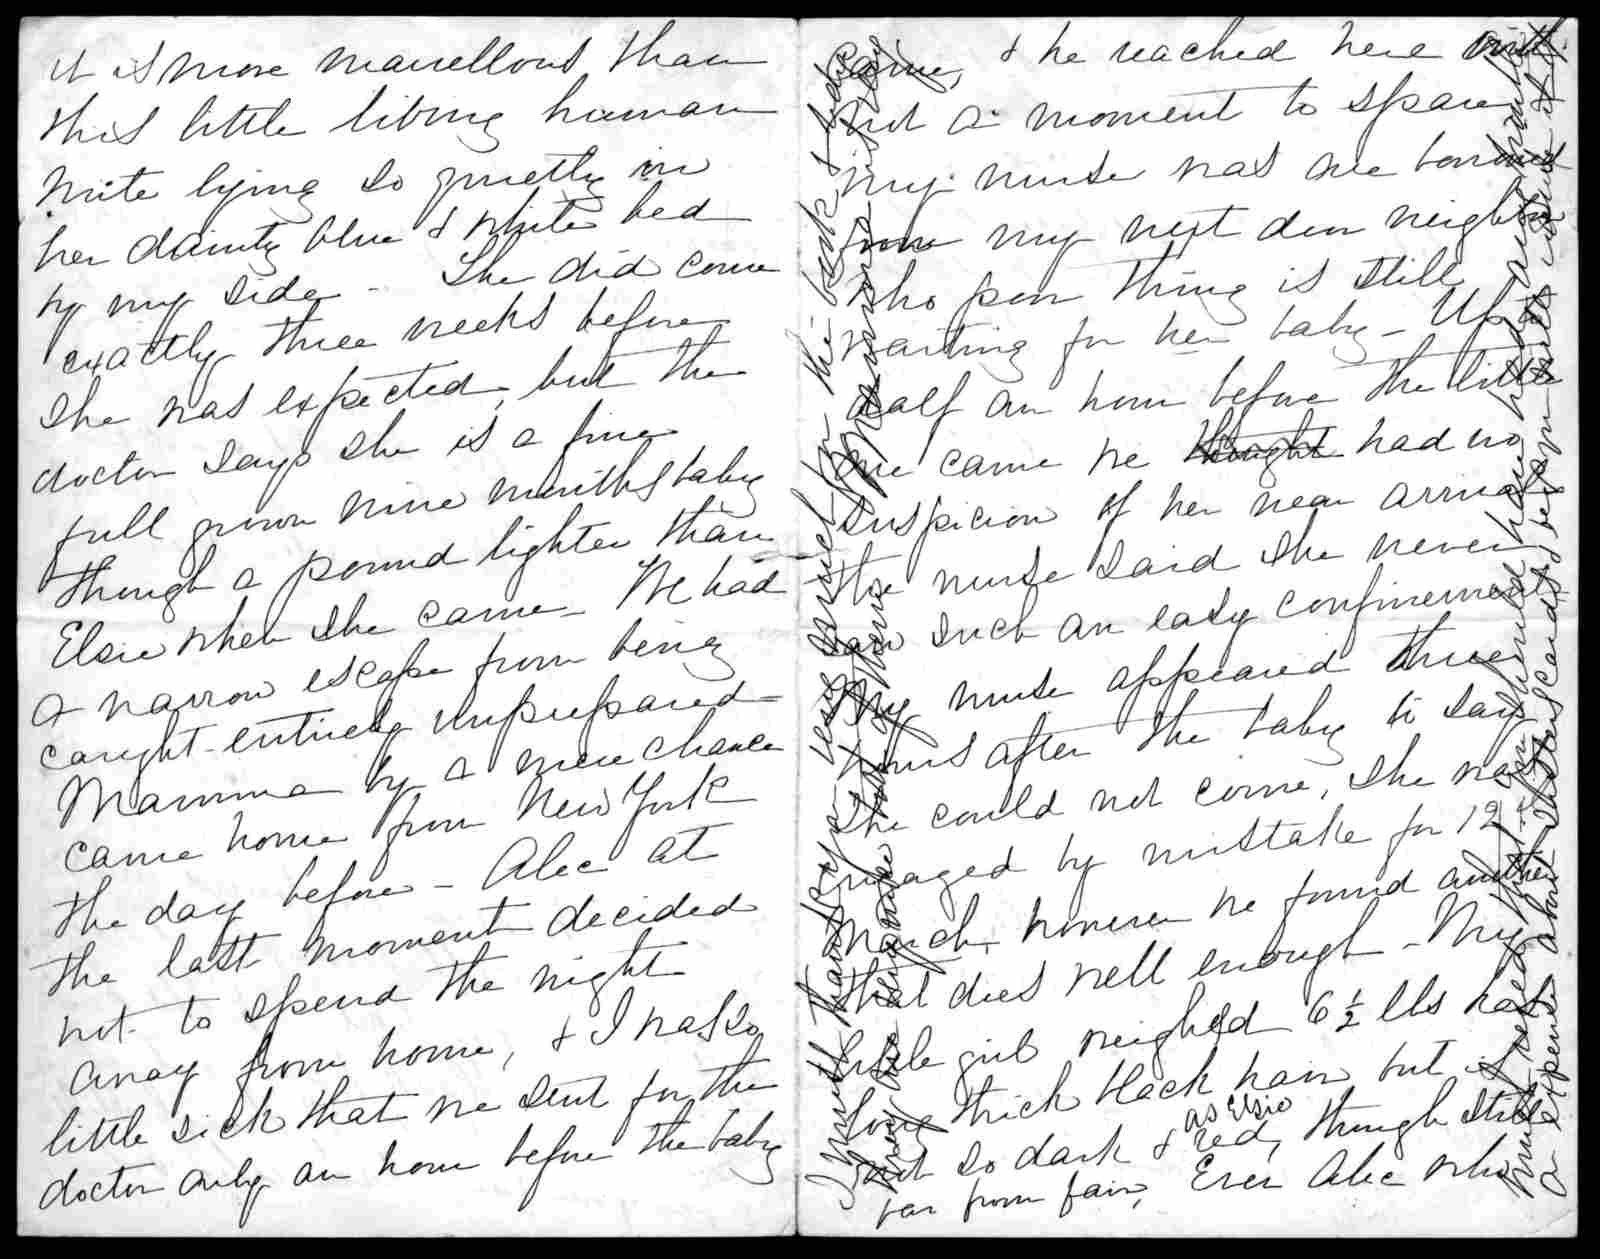 Letter from Mabel Hubbard Bell to Eliza Symonds Bell, undated